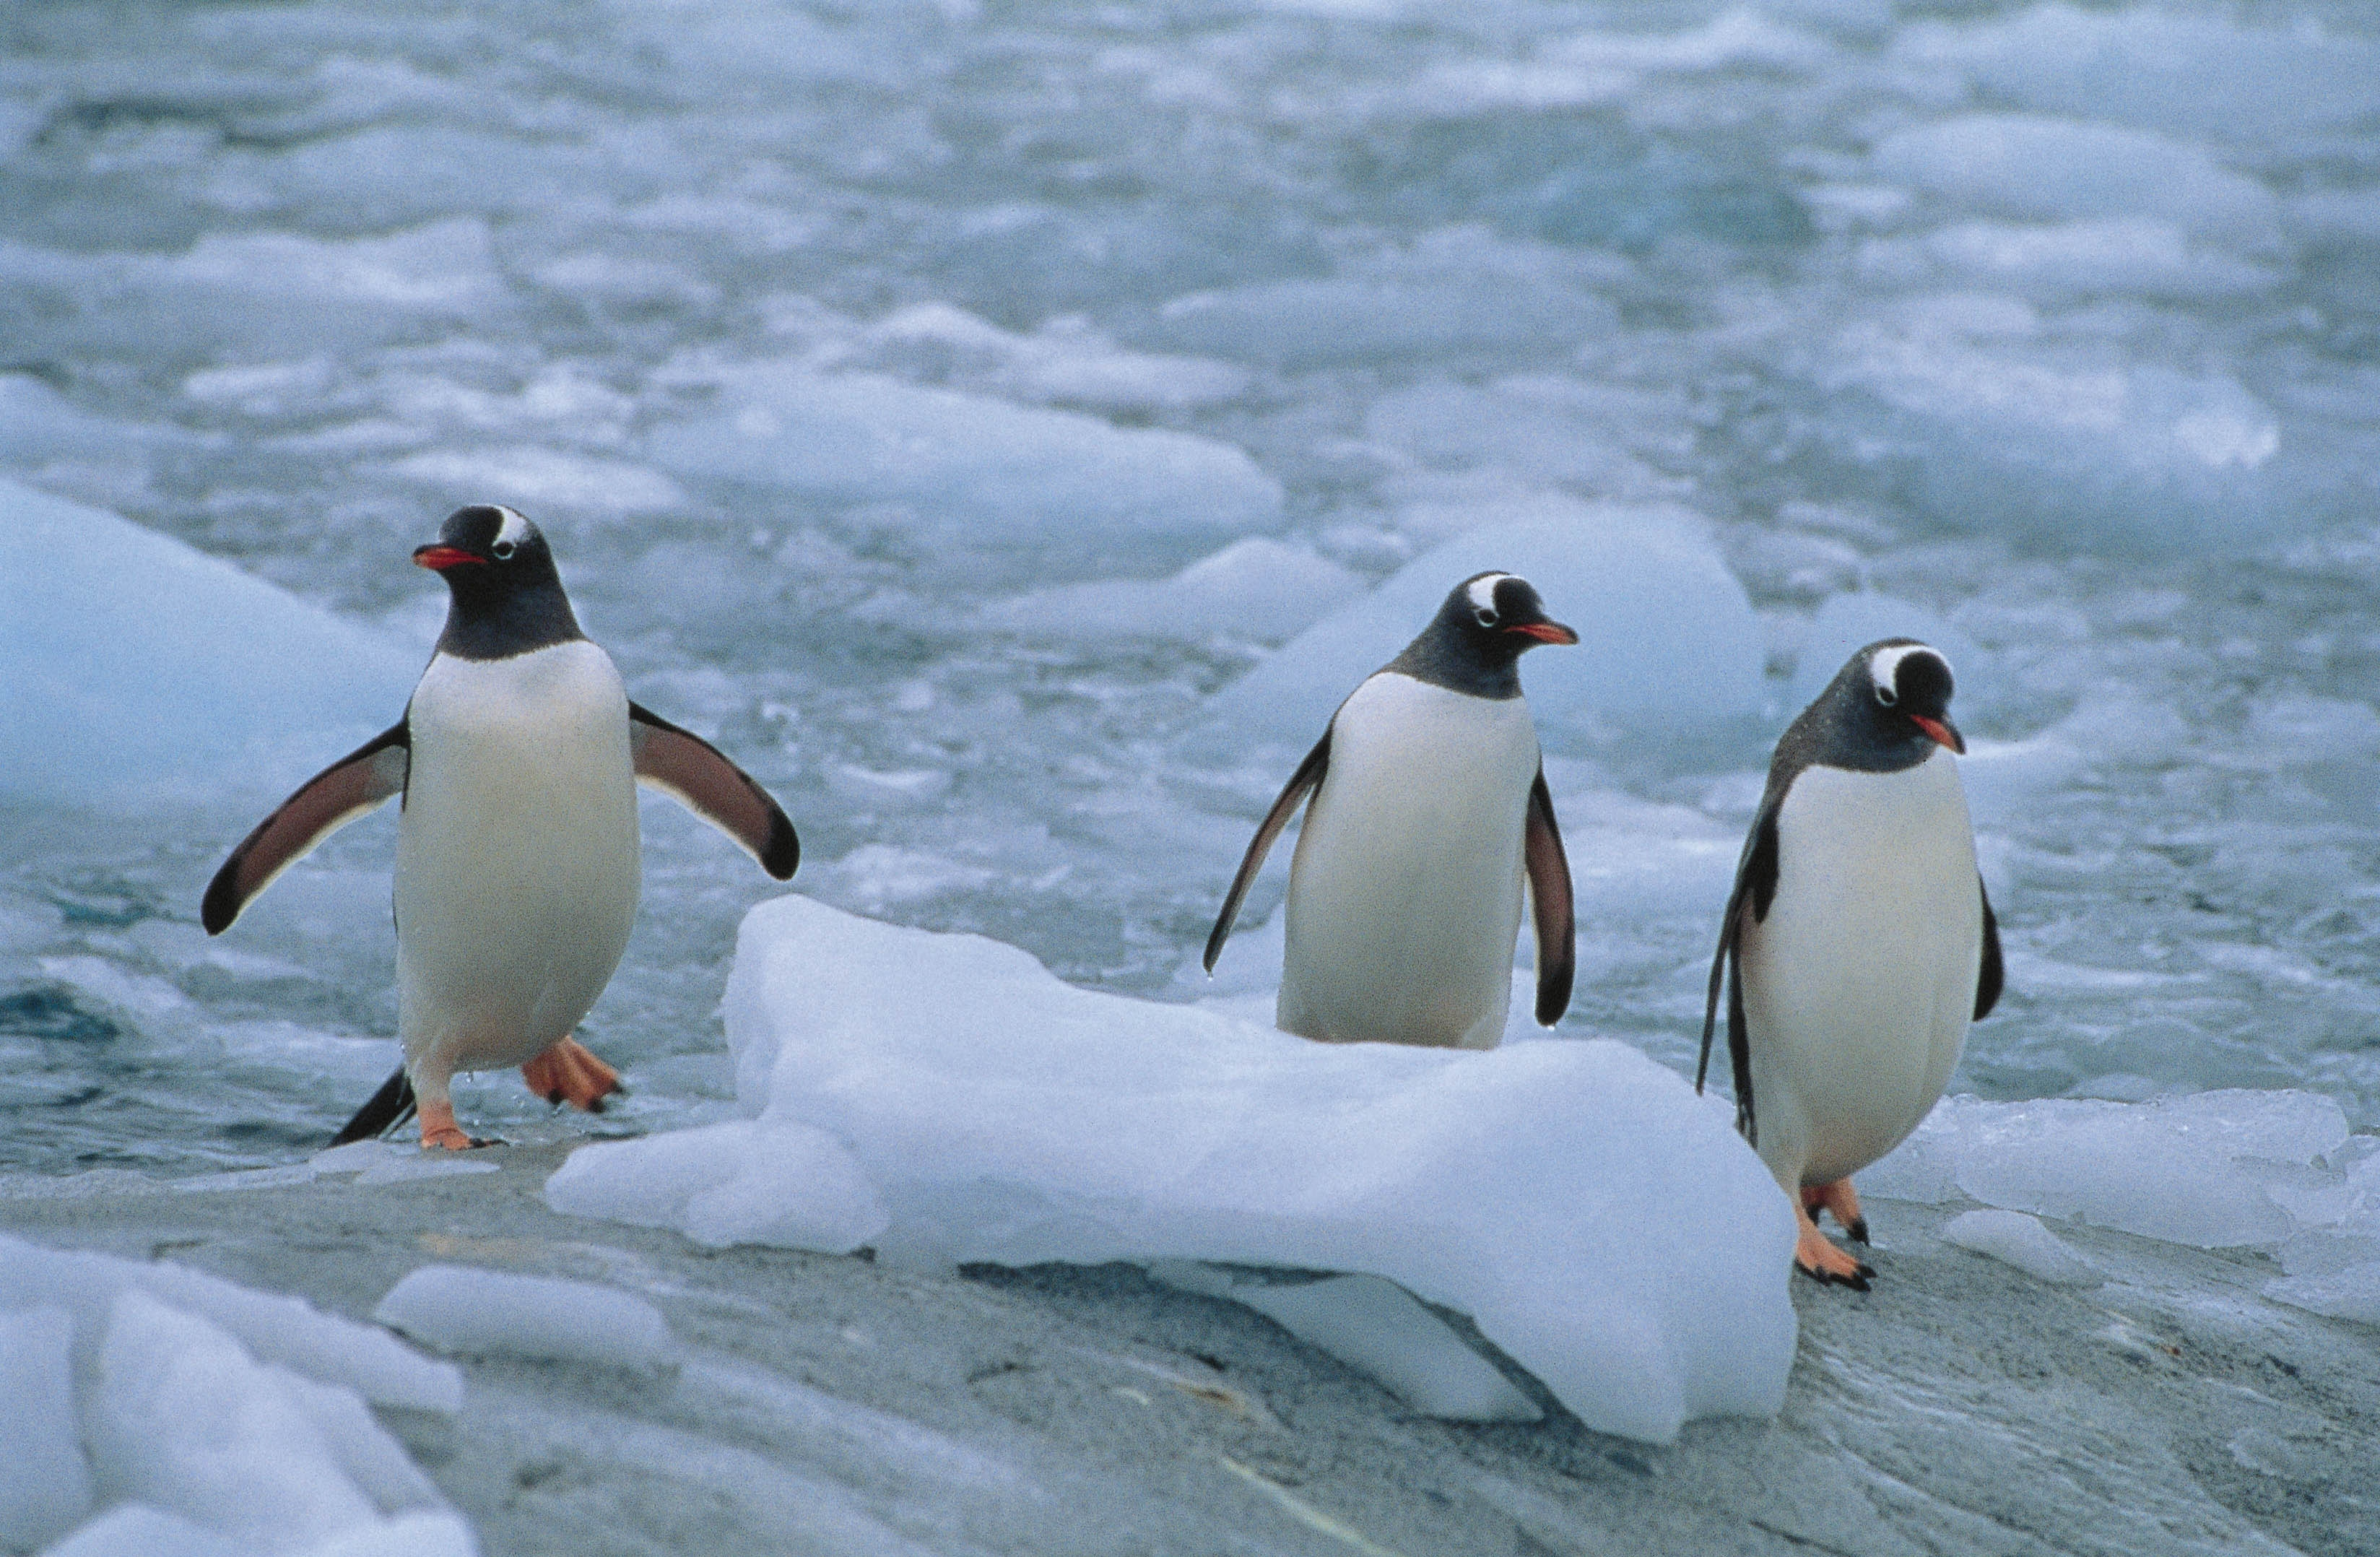 58064 download wallpaper Animals, Pinguins, Three, Linux, North screensavers and pictures for free